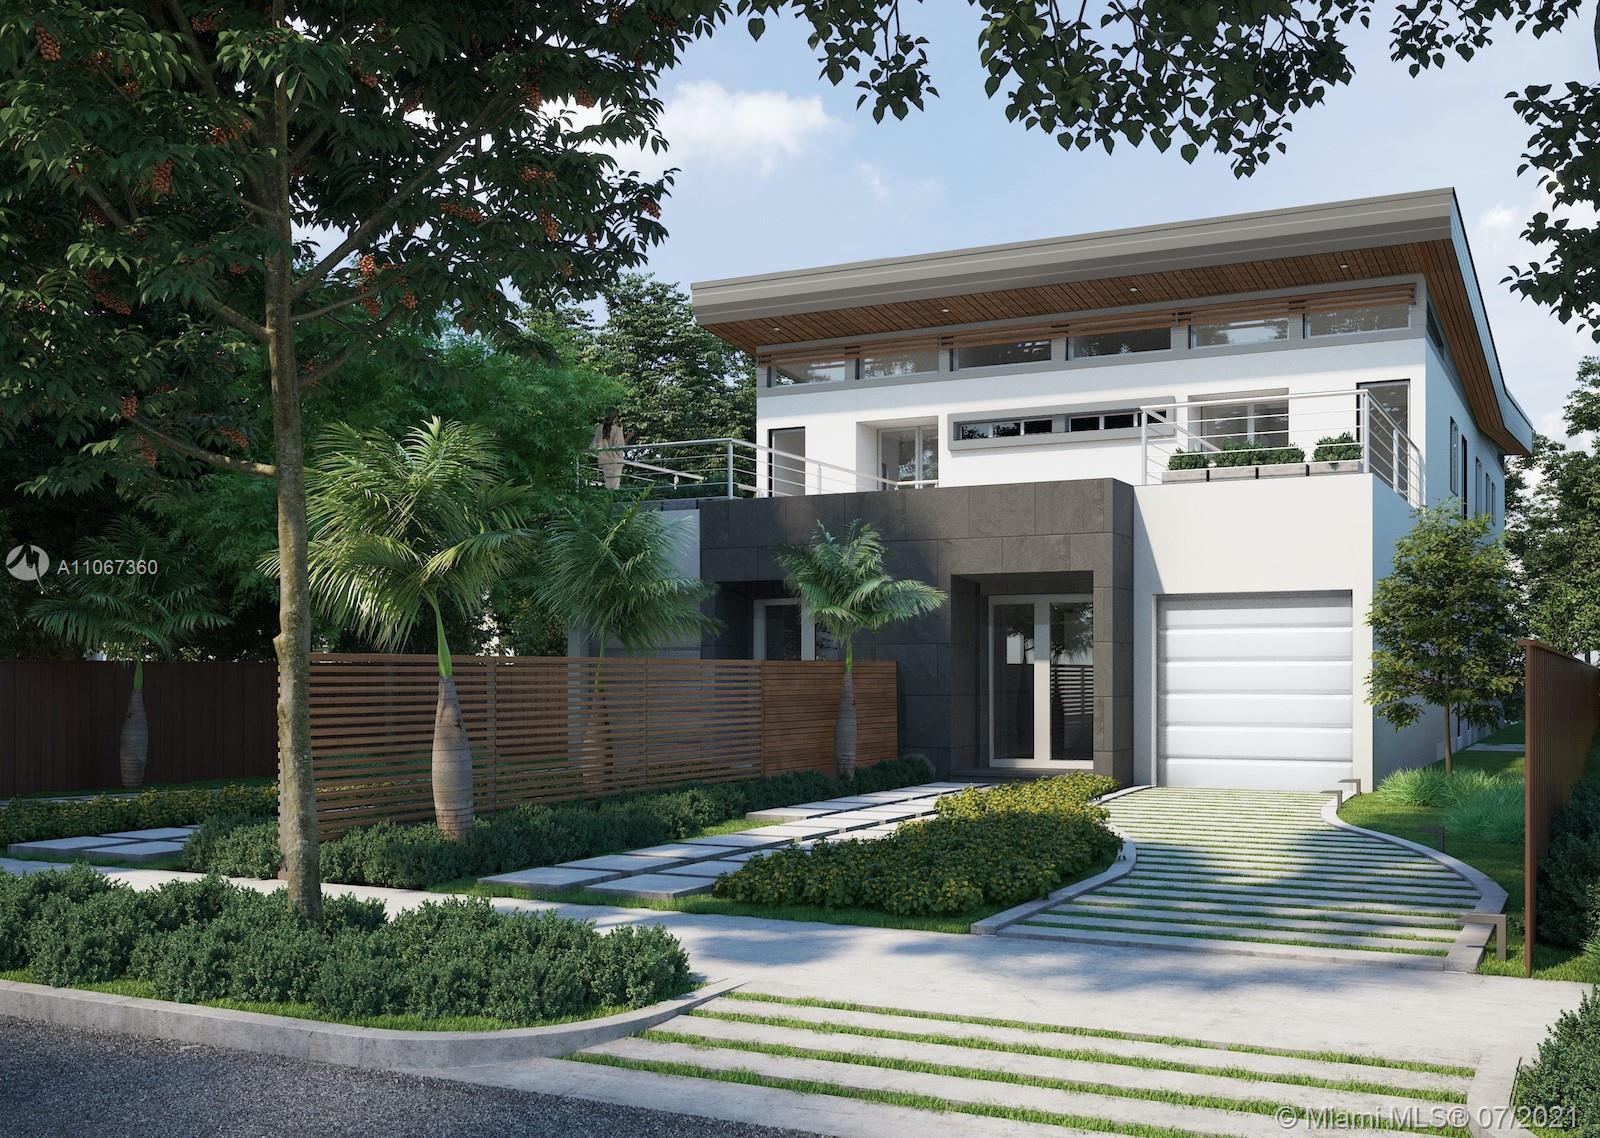 ONE OF TWO SPACIOUS NEW CONSTRUCTION 3 Bedroom 3 Bathroom PLUS Den/Office Townhomes in Highly Sought